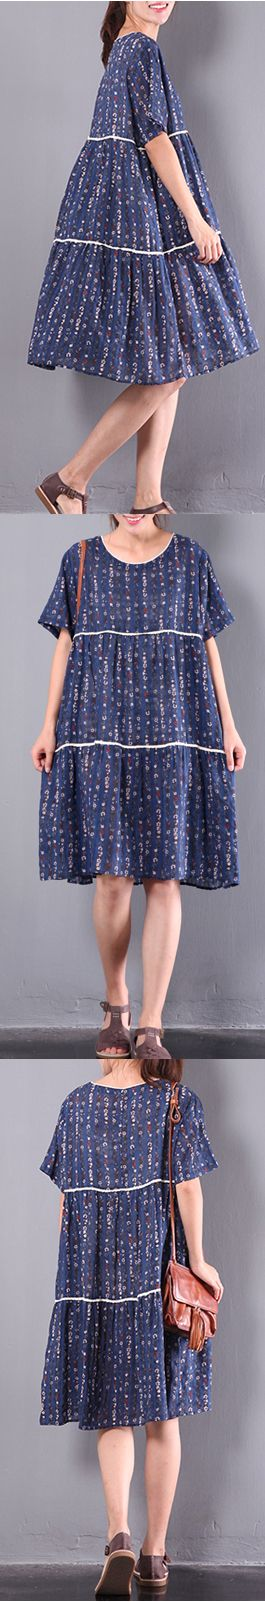 2017 blue floral linen dresses casual plus size sundress short sleeve women dress